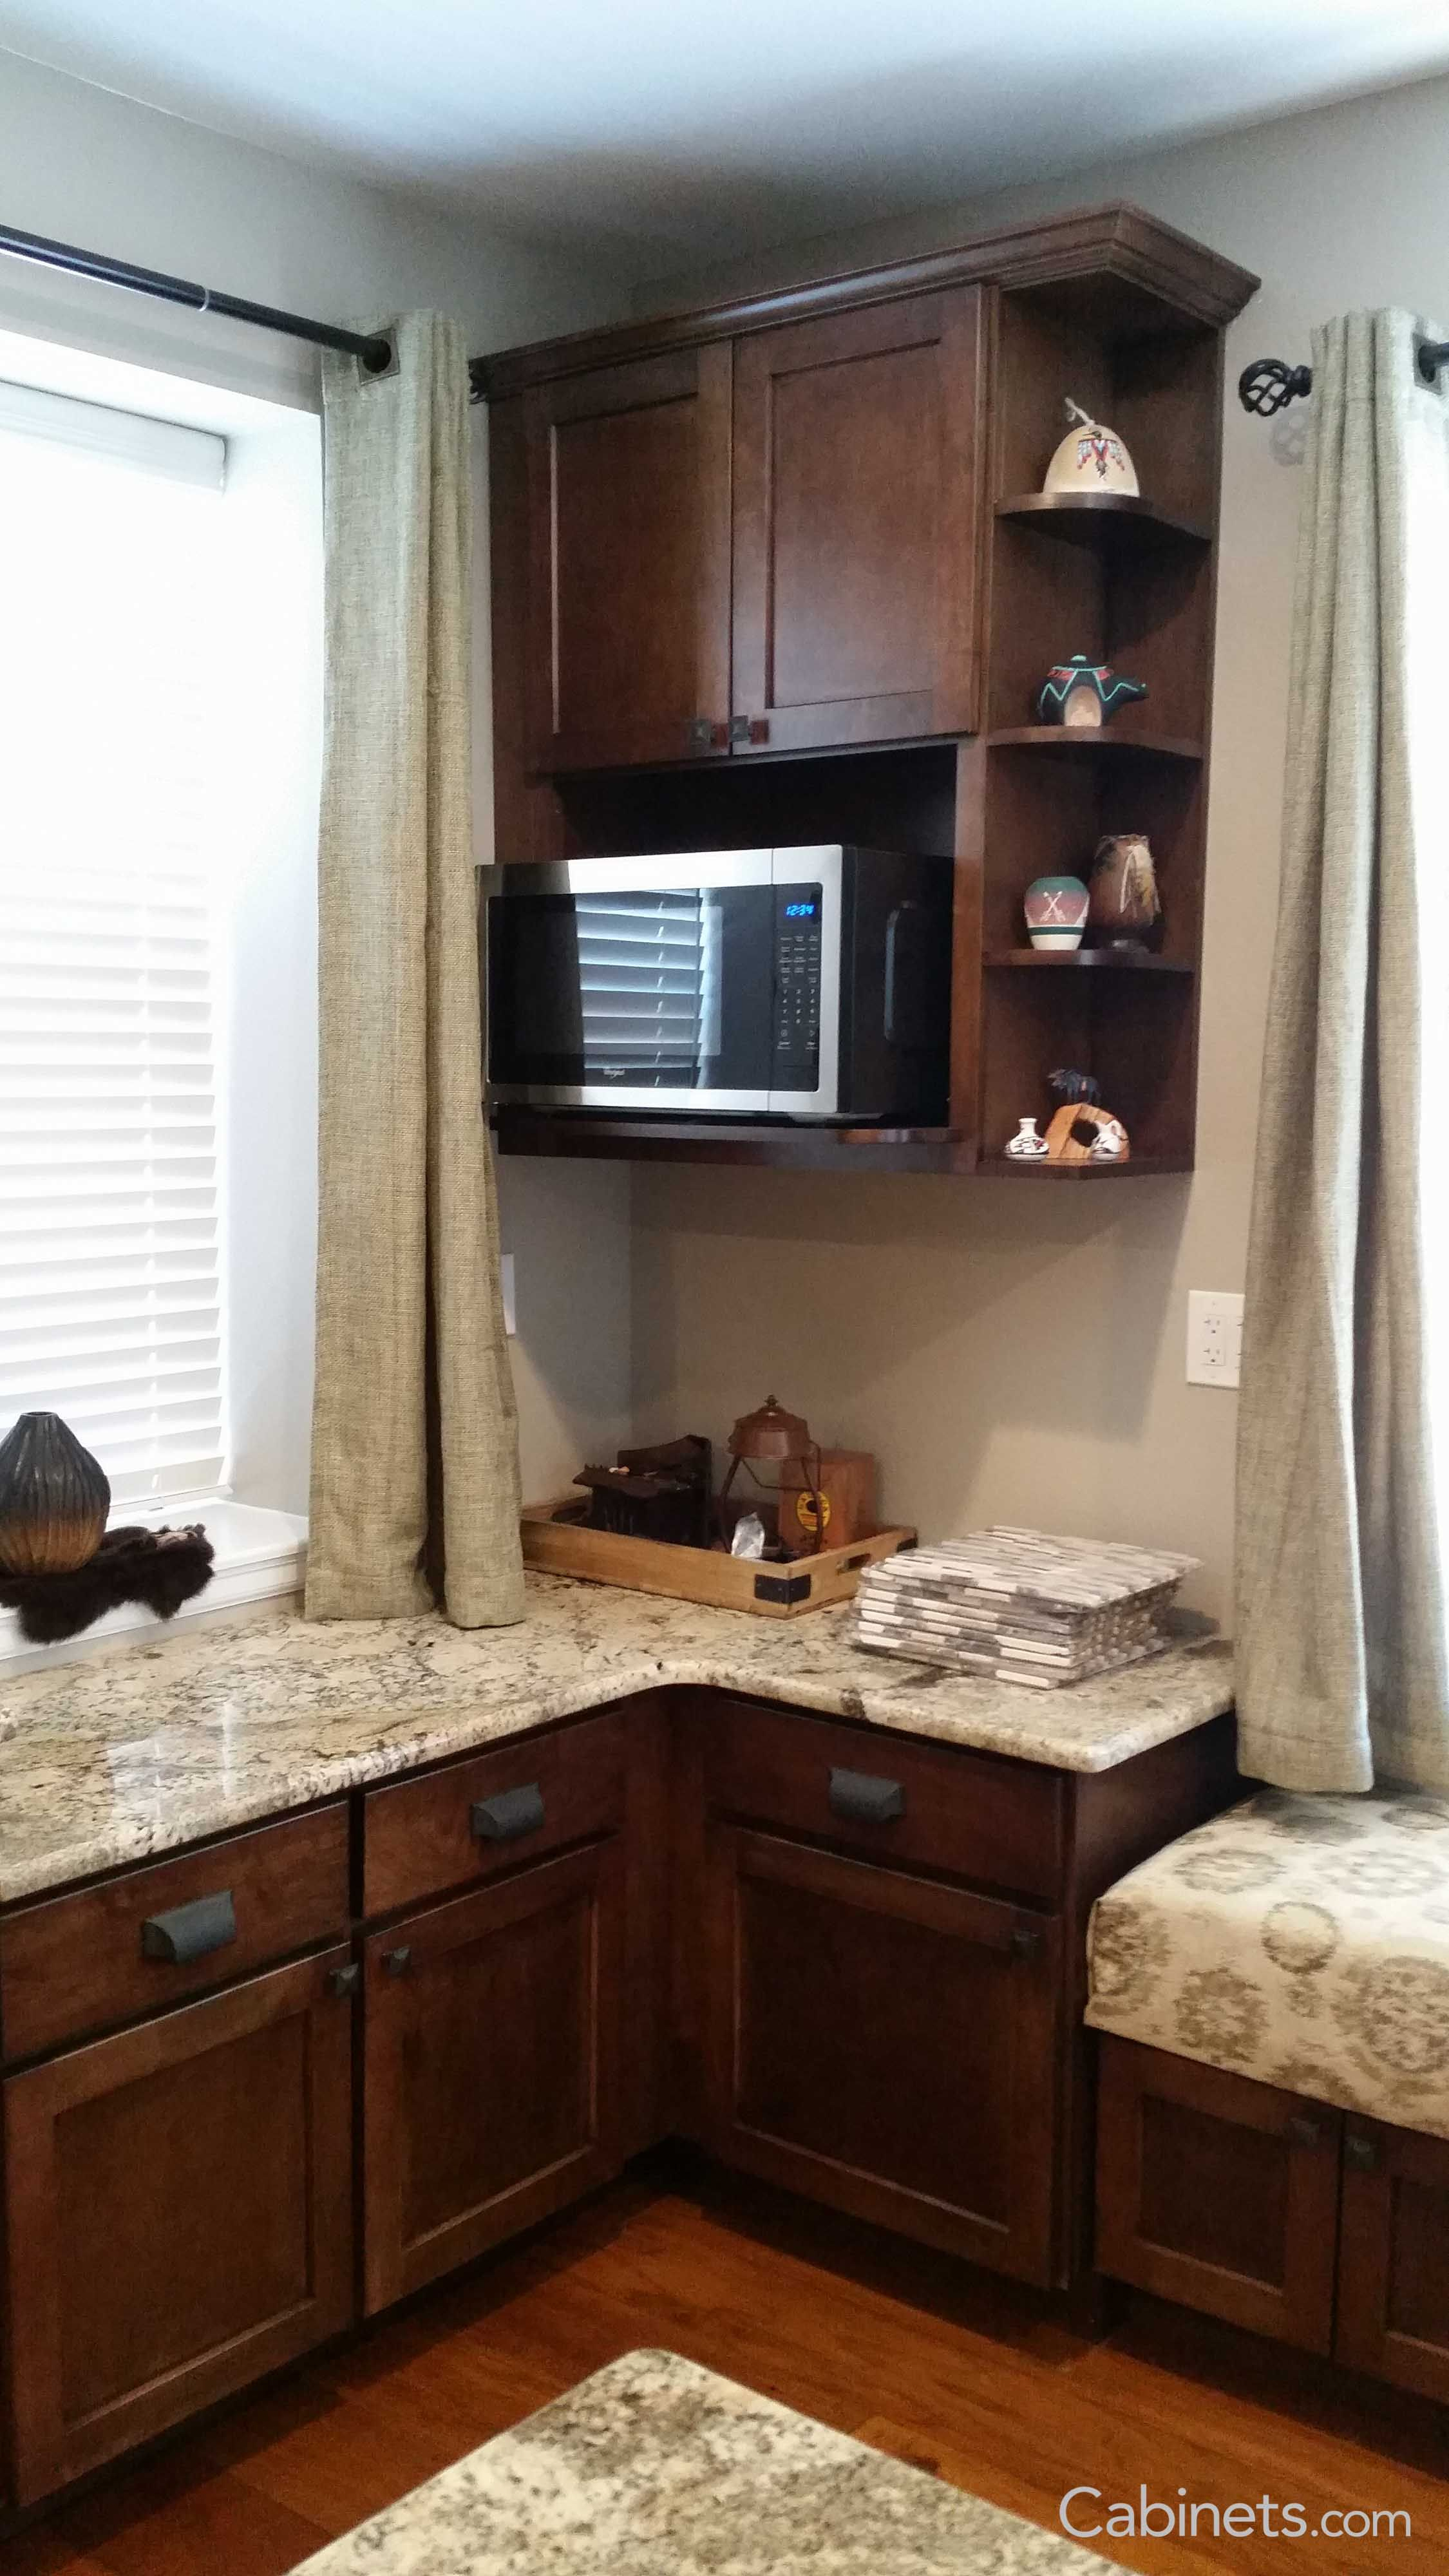 styles bathroom doors cabinet maple size new in units built cabinets custom awesome rta pre kitchens cabinetry kitchen of vanity and design full bath